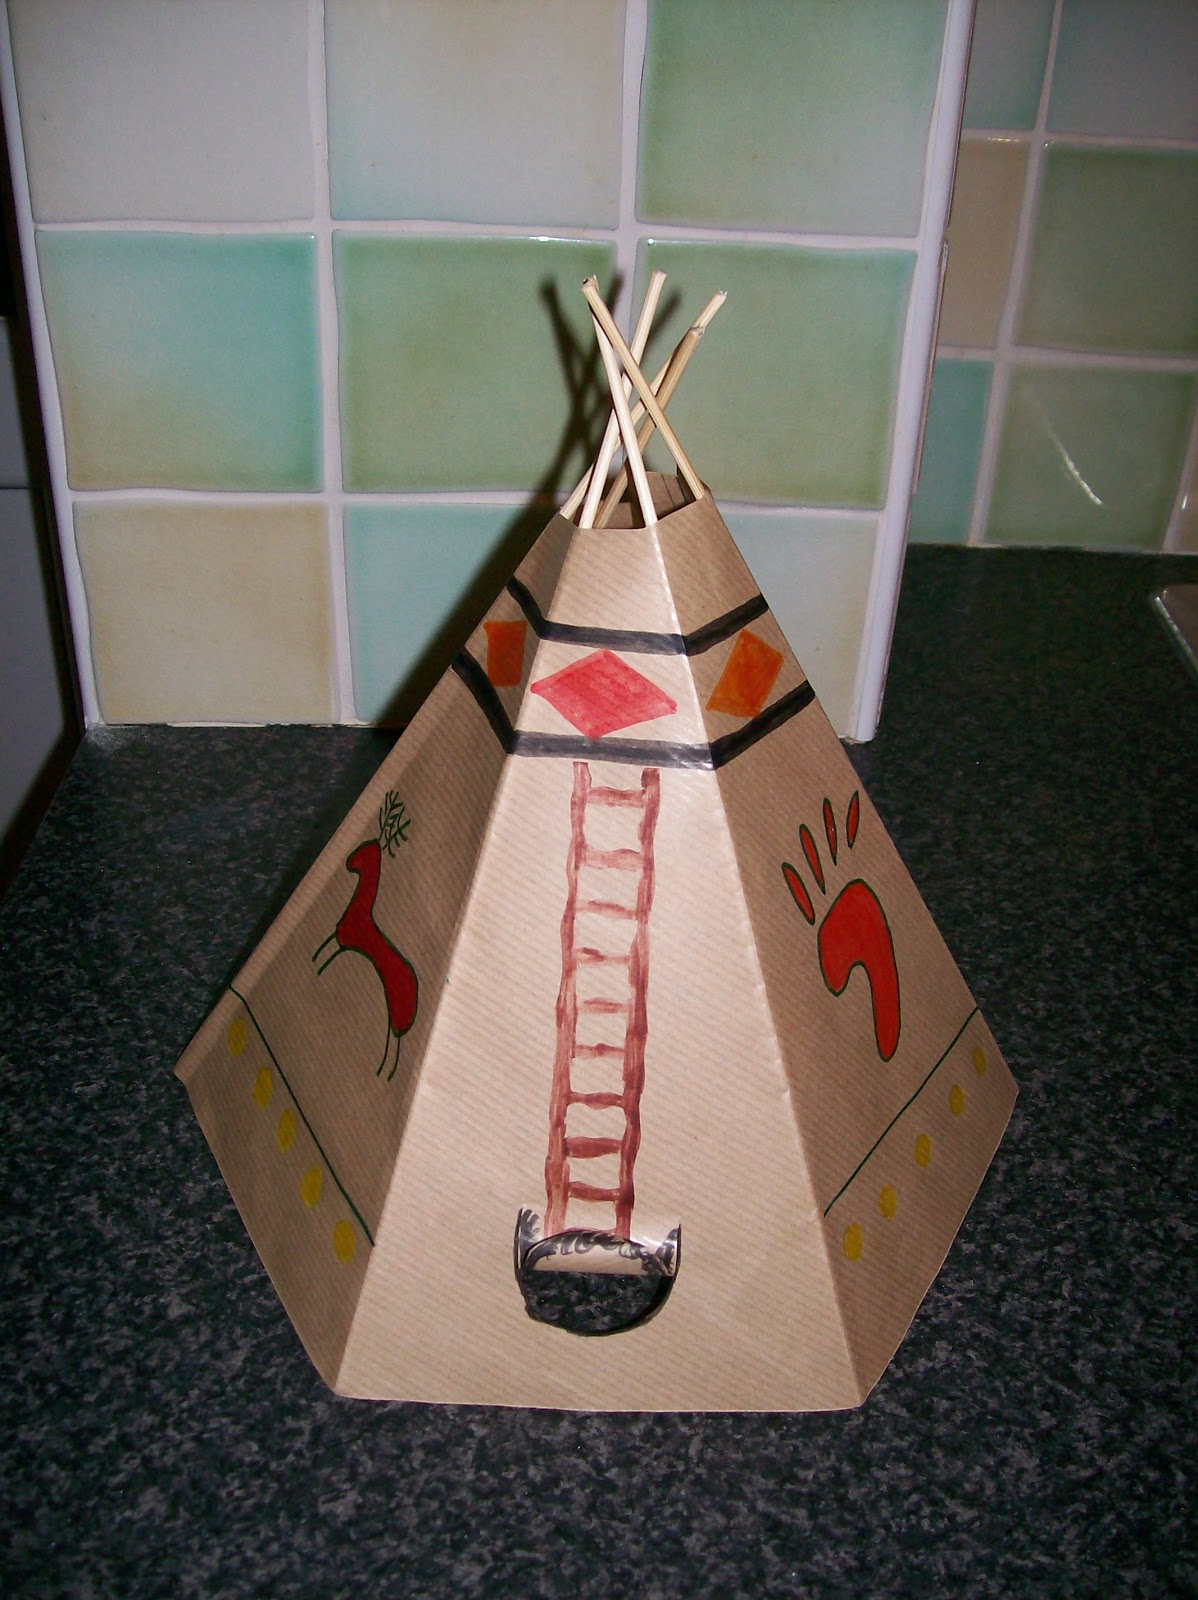 All Sorts Dad 39 S School Project Building A Teepee